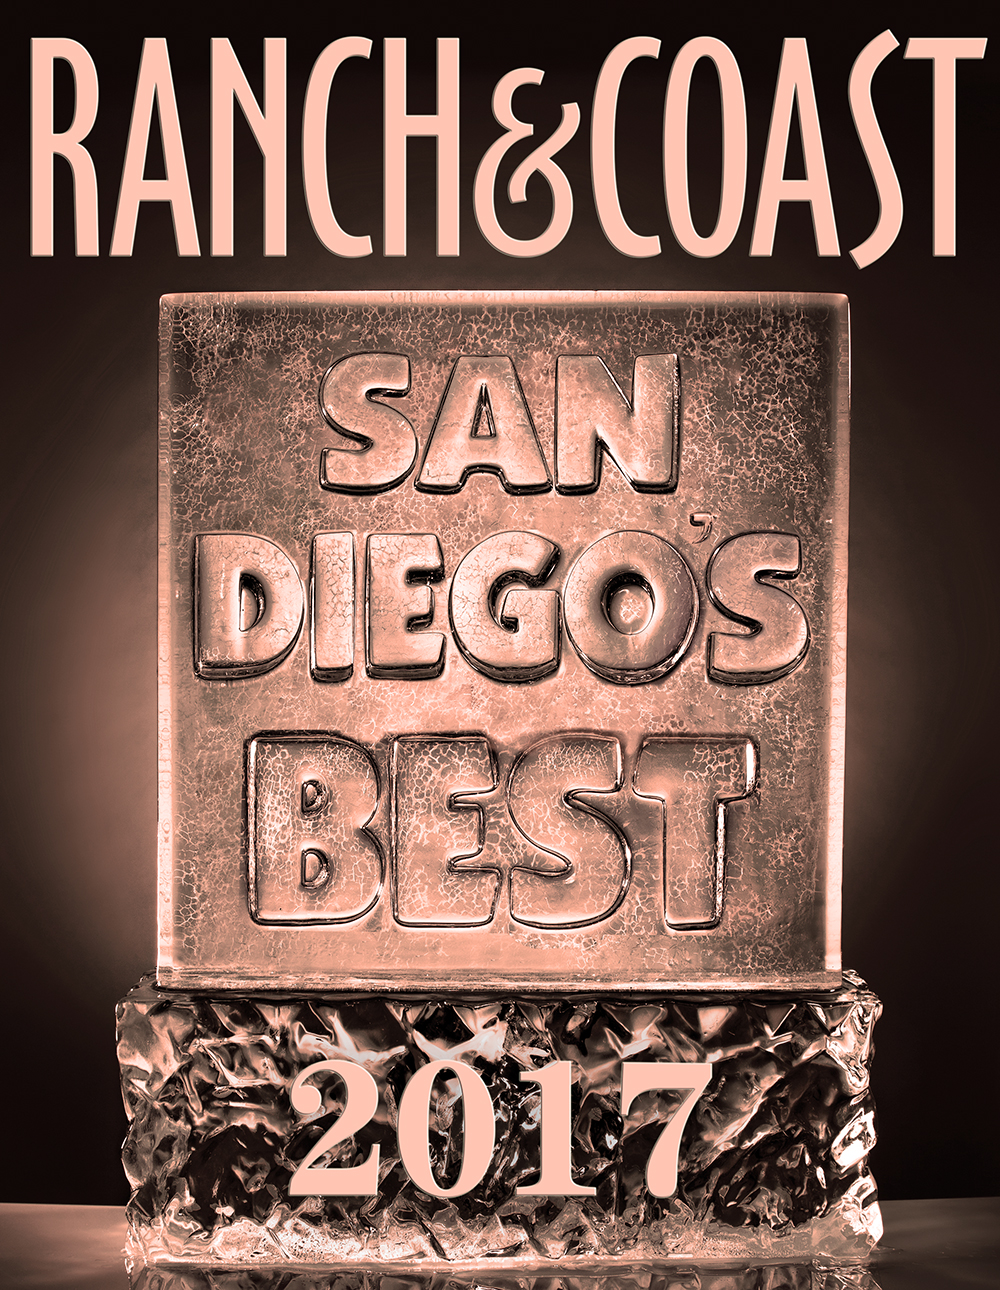 Sirius K. Yoo, M.D. received the coveted Best Cosmetic Surgeon award from Ranch & Coast Magazine for 2017. He also received this award in 2016 and 2015.